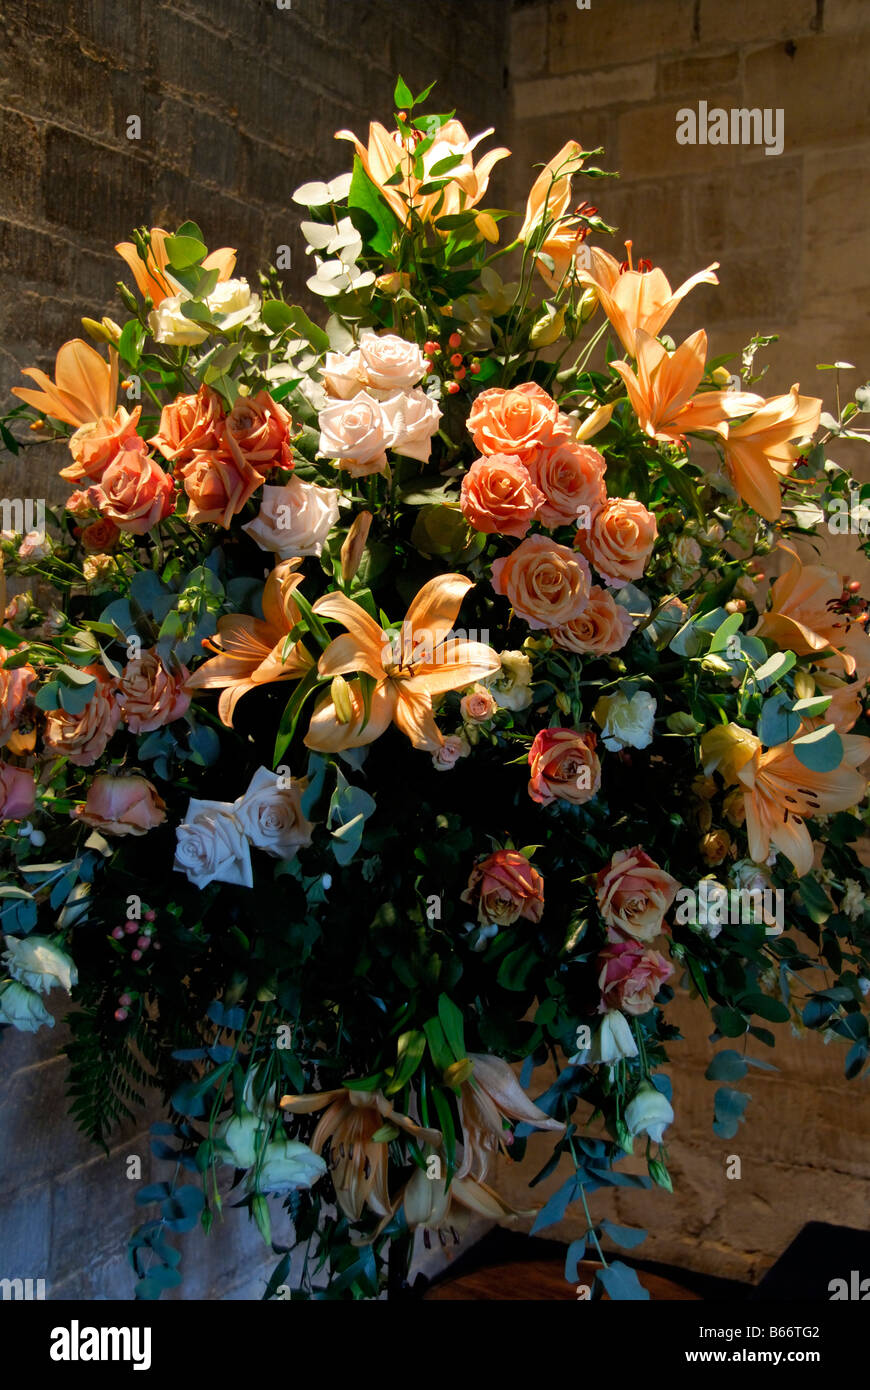 Flower Arrangement In Church High Resolution Stock Photography And Images Alamy